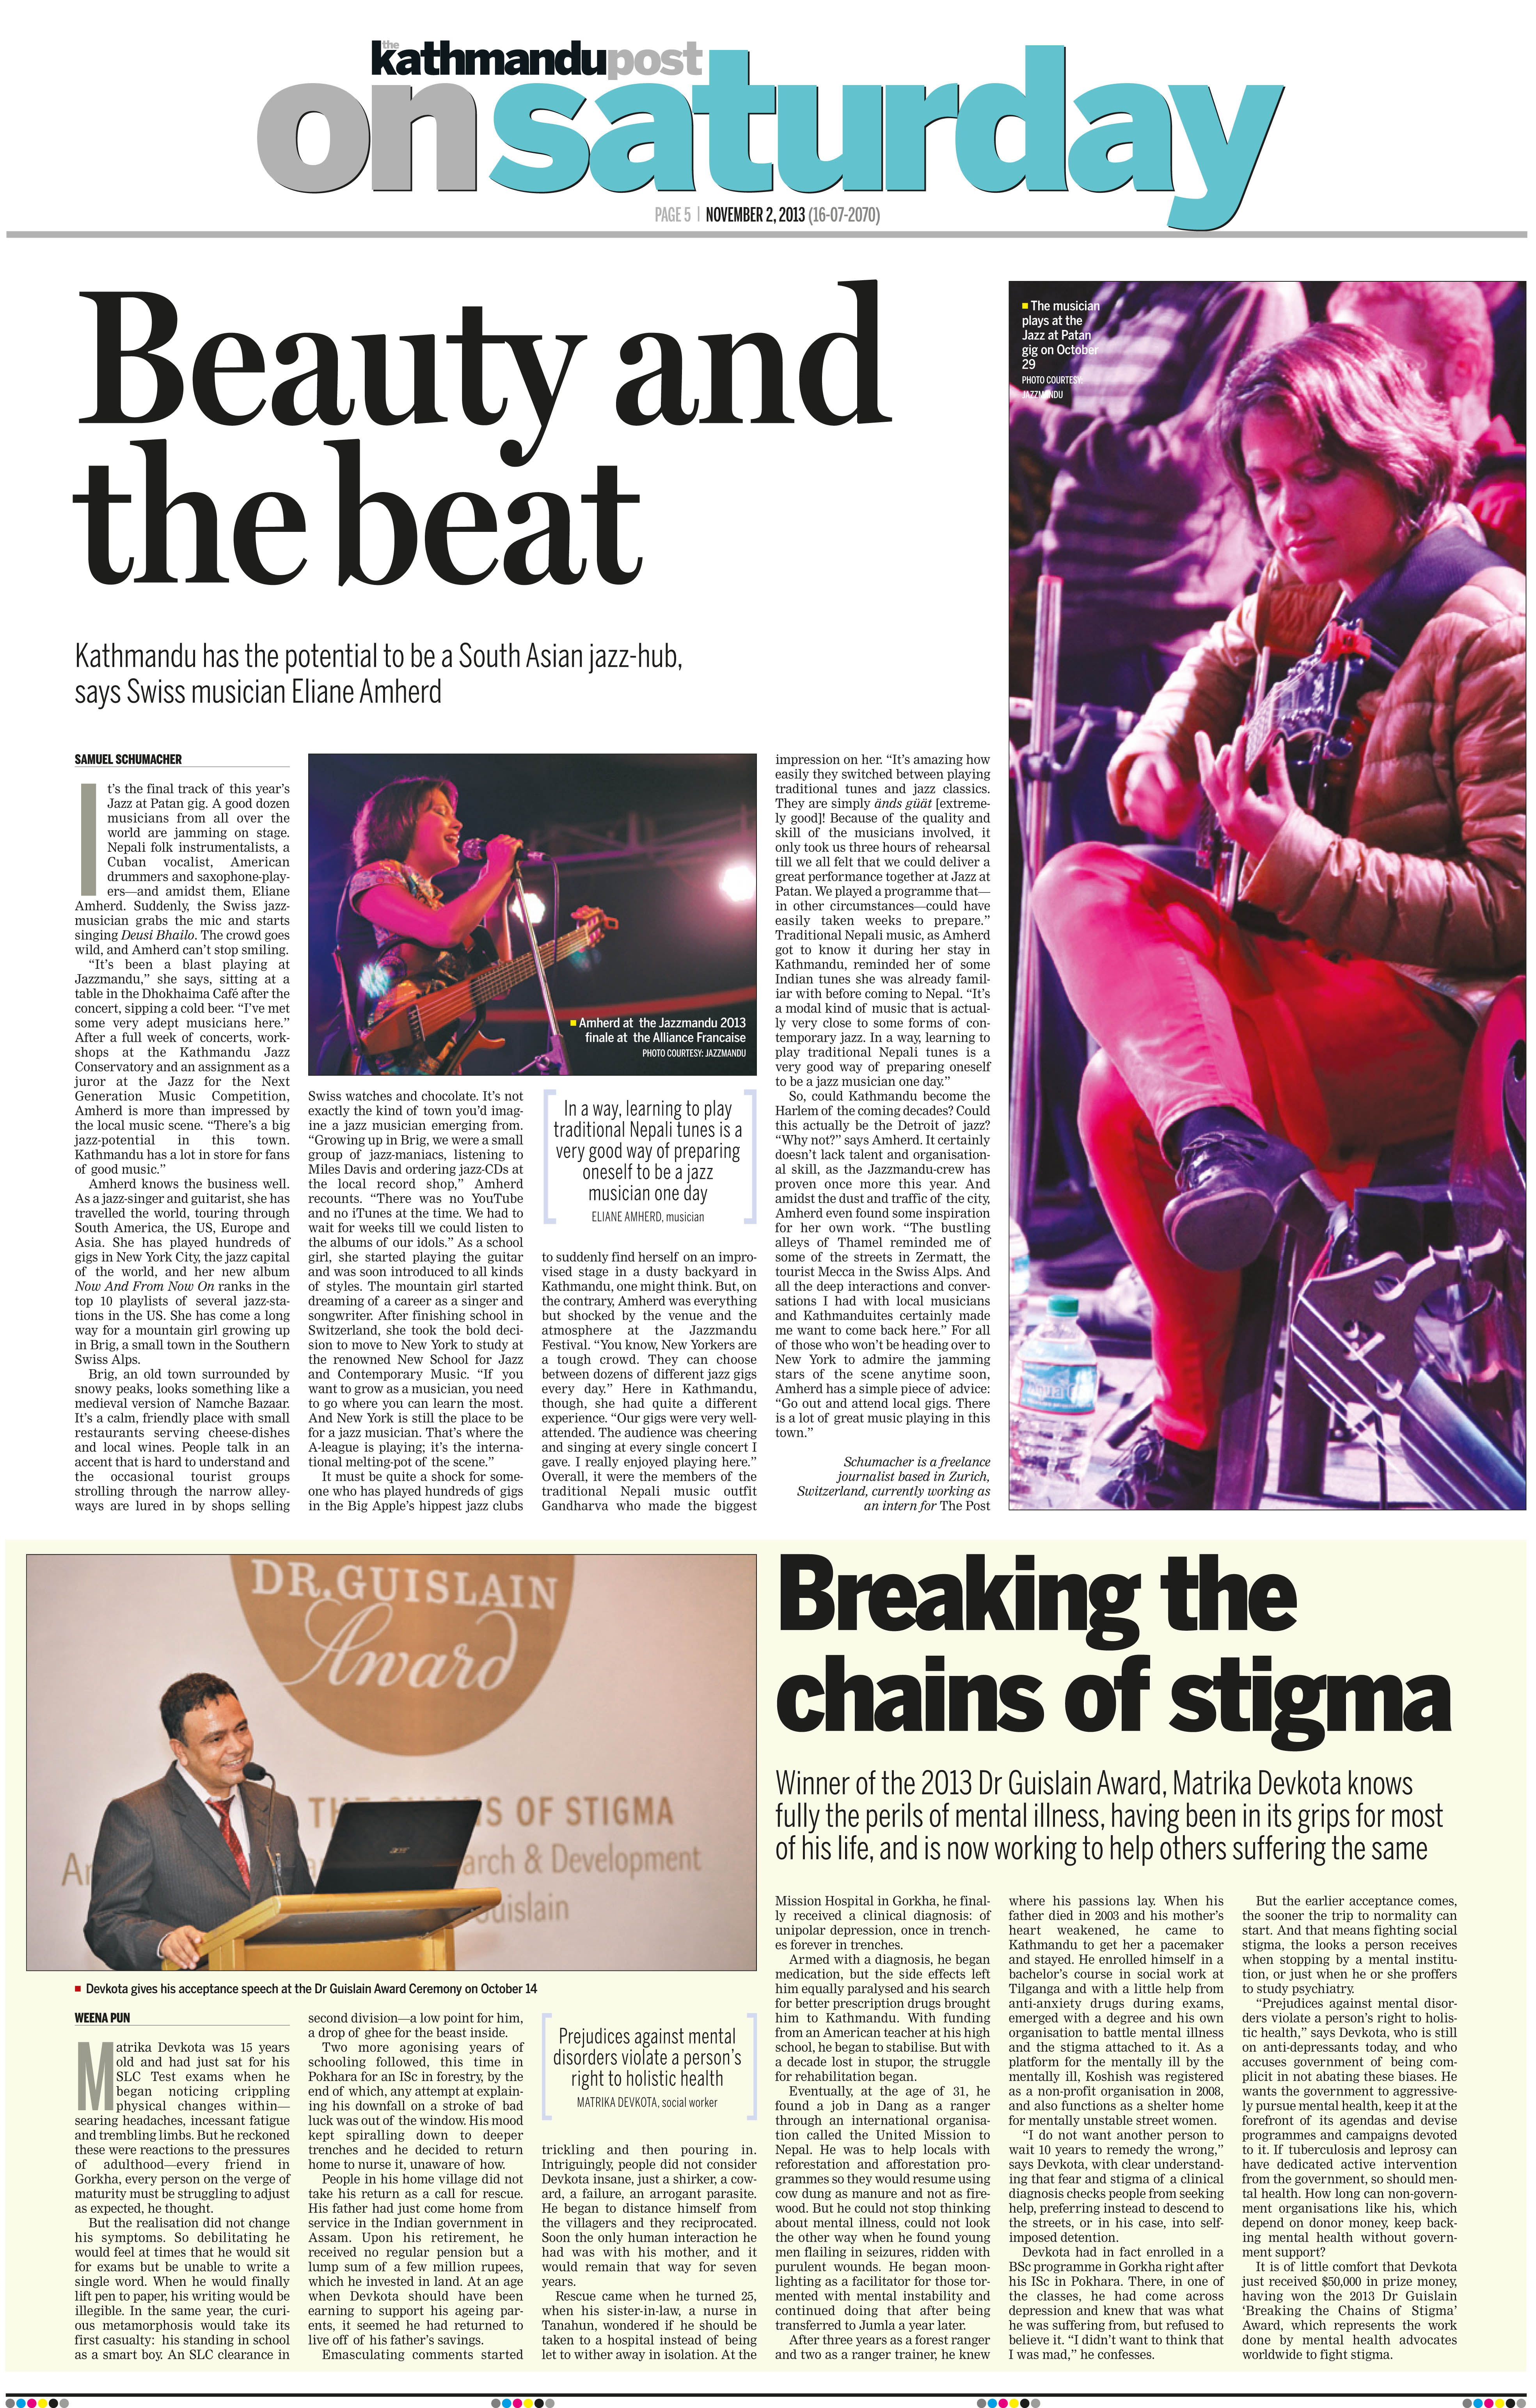 """Beauty and the beat"", erschienen in der Kathmandu Post am Samstag, 2.11.2013."